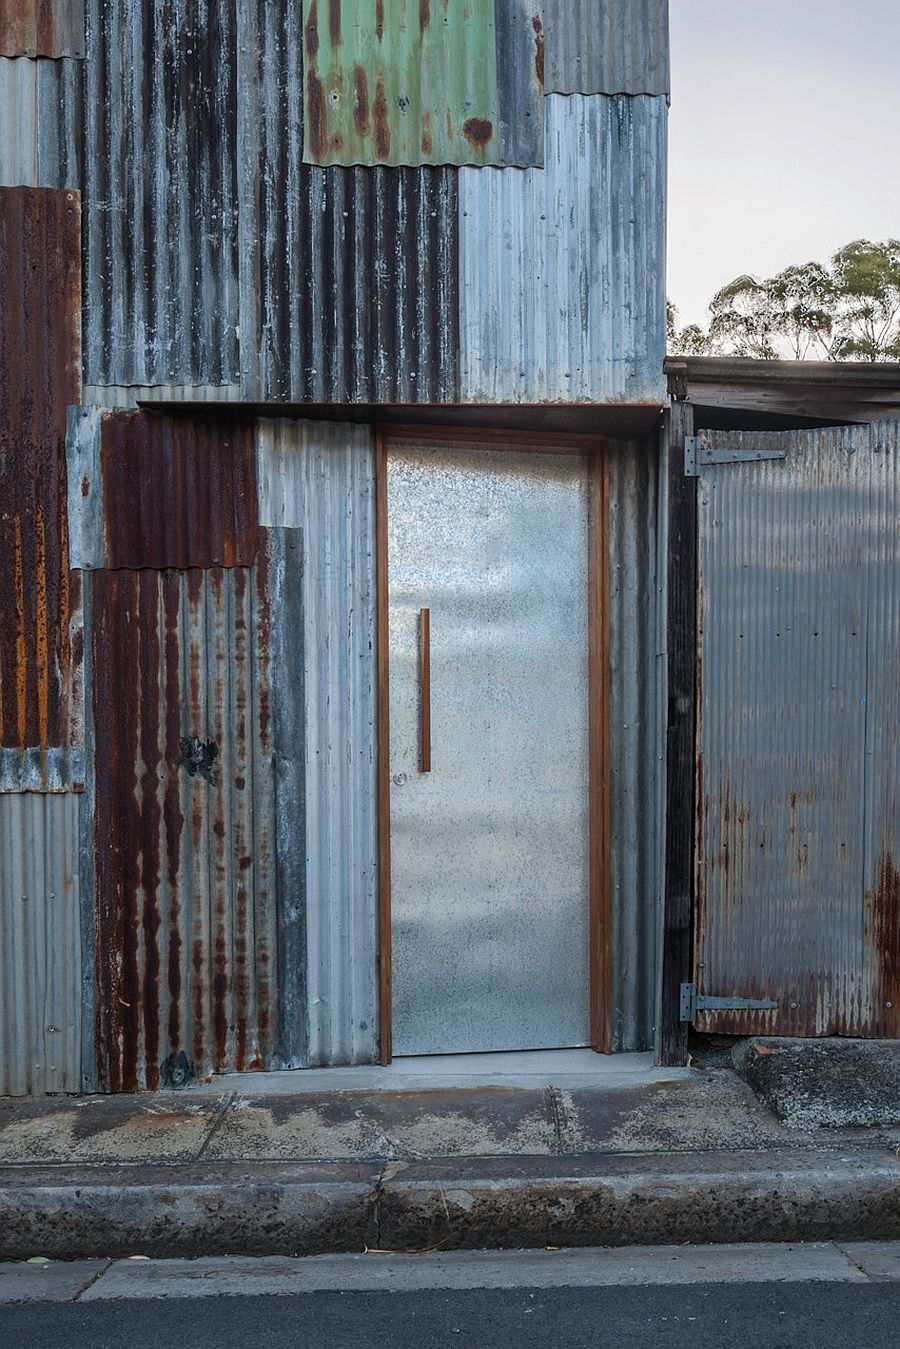 Pieces-from-the-original-disassembled-tin-shed-cover-the-new-facade